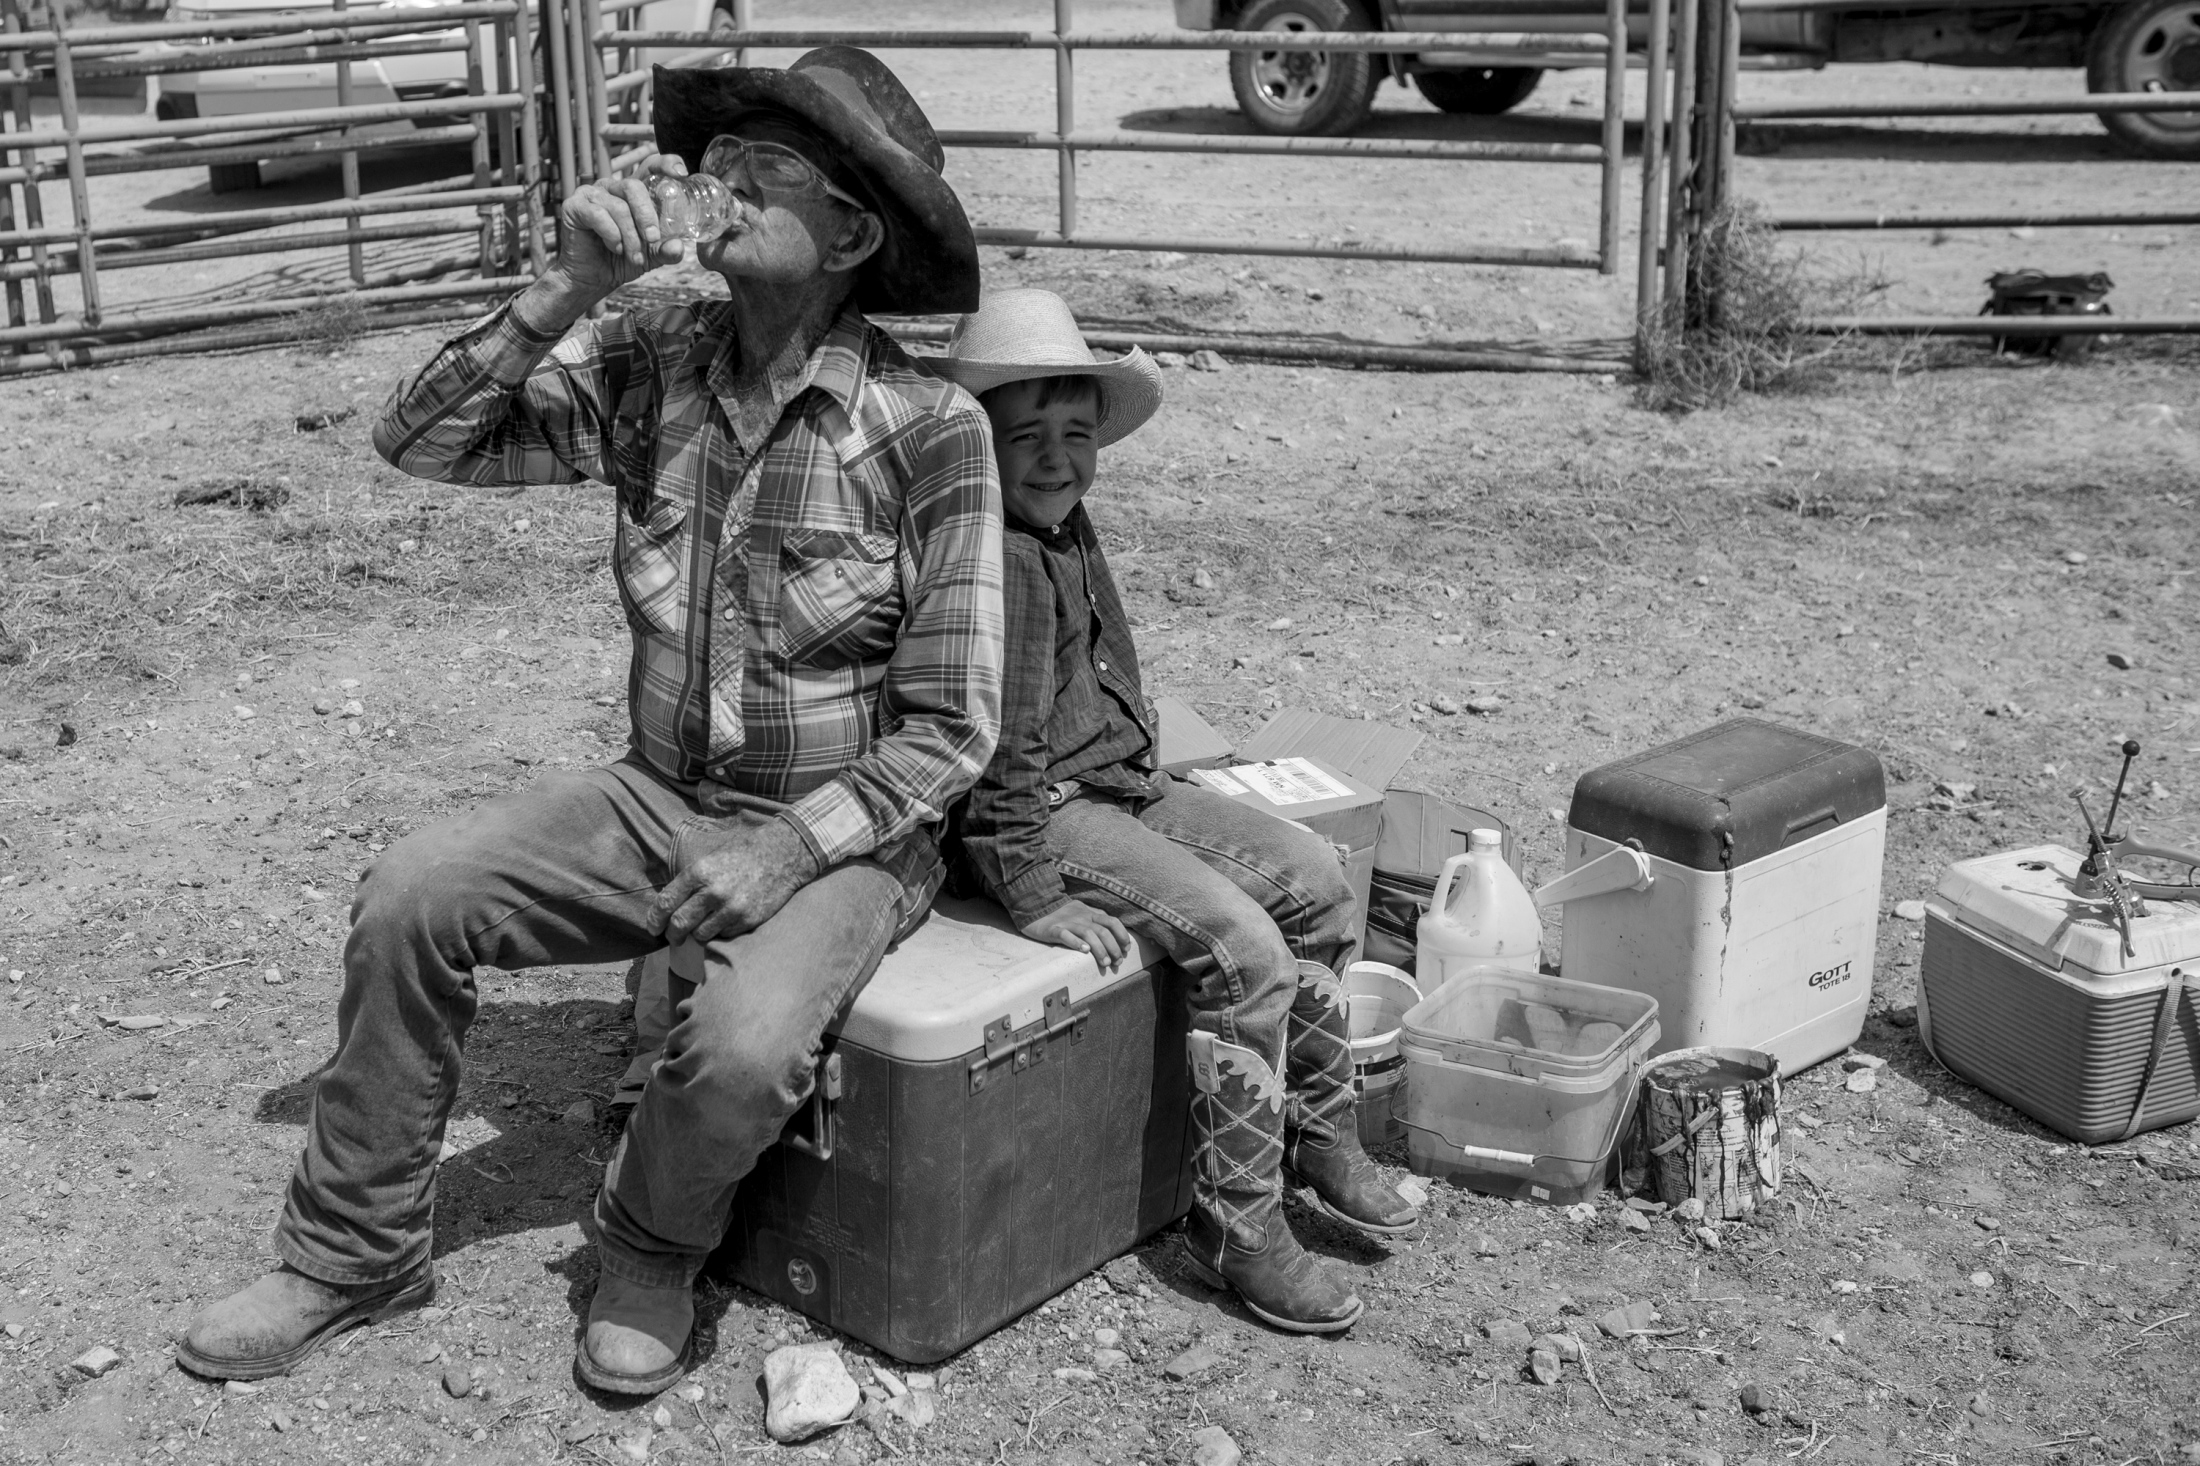 Eighty-two-year-old Bill Wells chugs water while sitting next to his great-grandson Ryan while taking a break from branding in to nearly ninety degree spring heat.